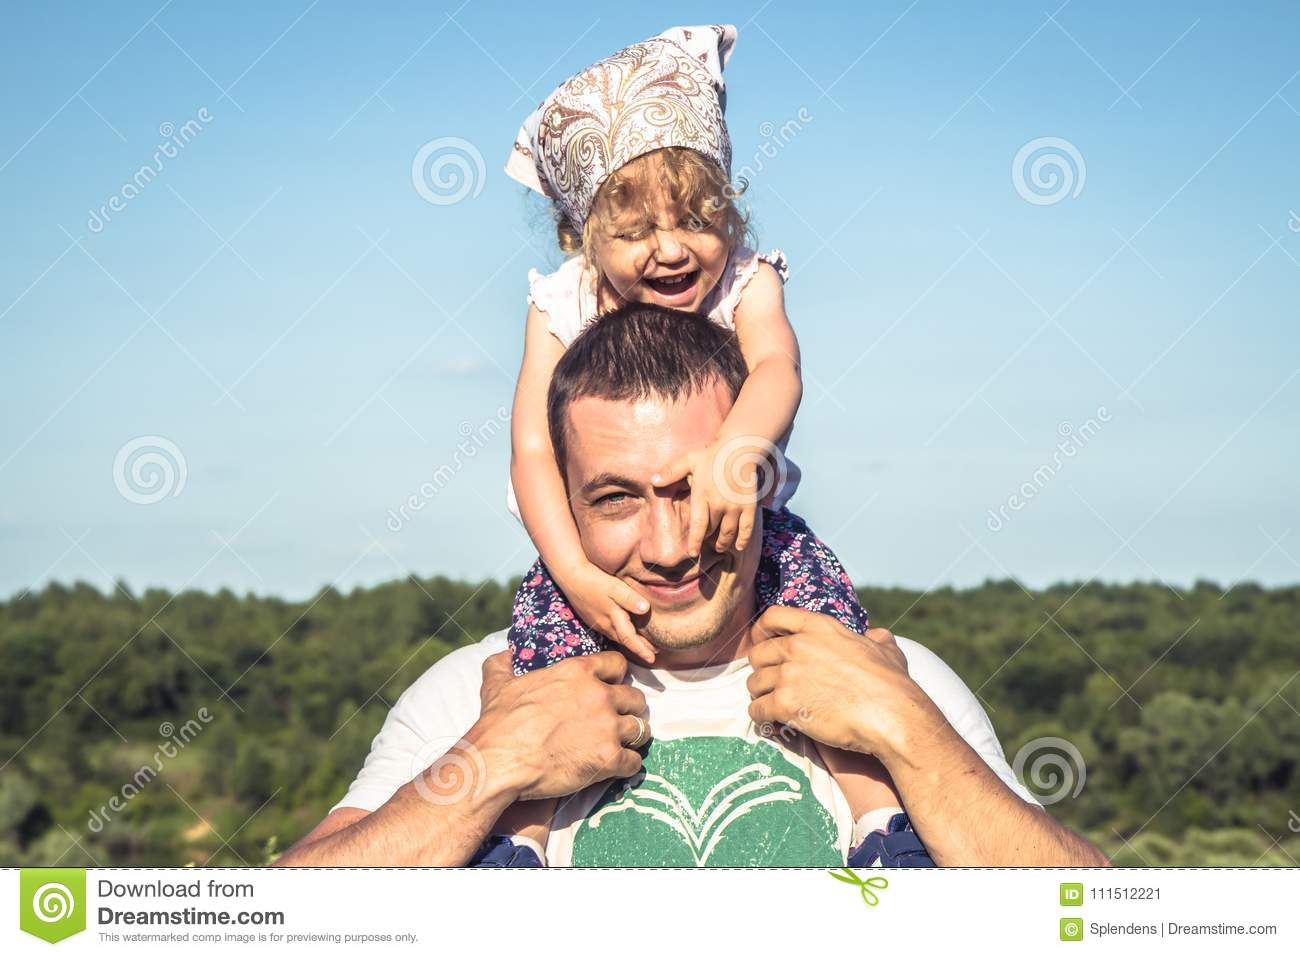 Father cute daughter having fun together as family lifestyle portrait in front of blue sky. Happy father holding his child